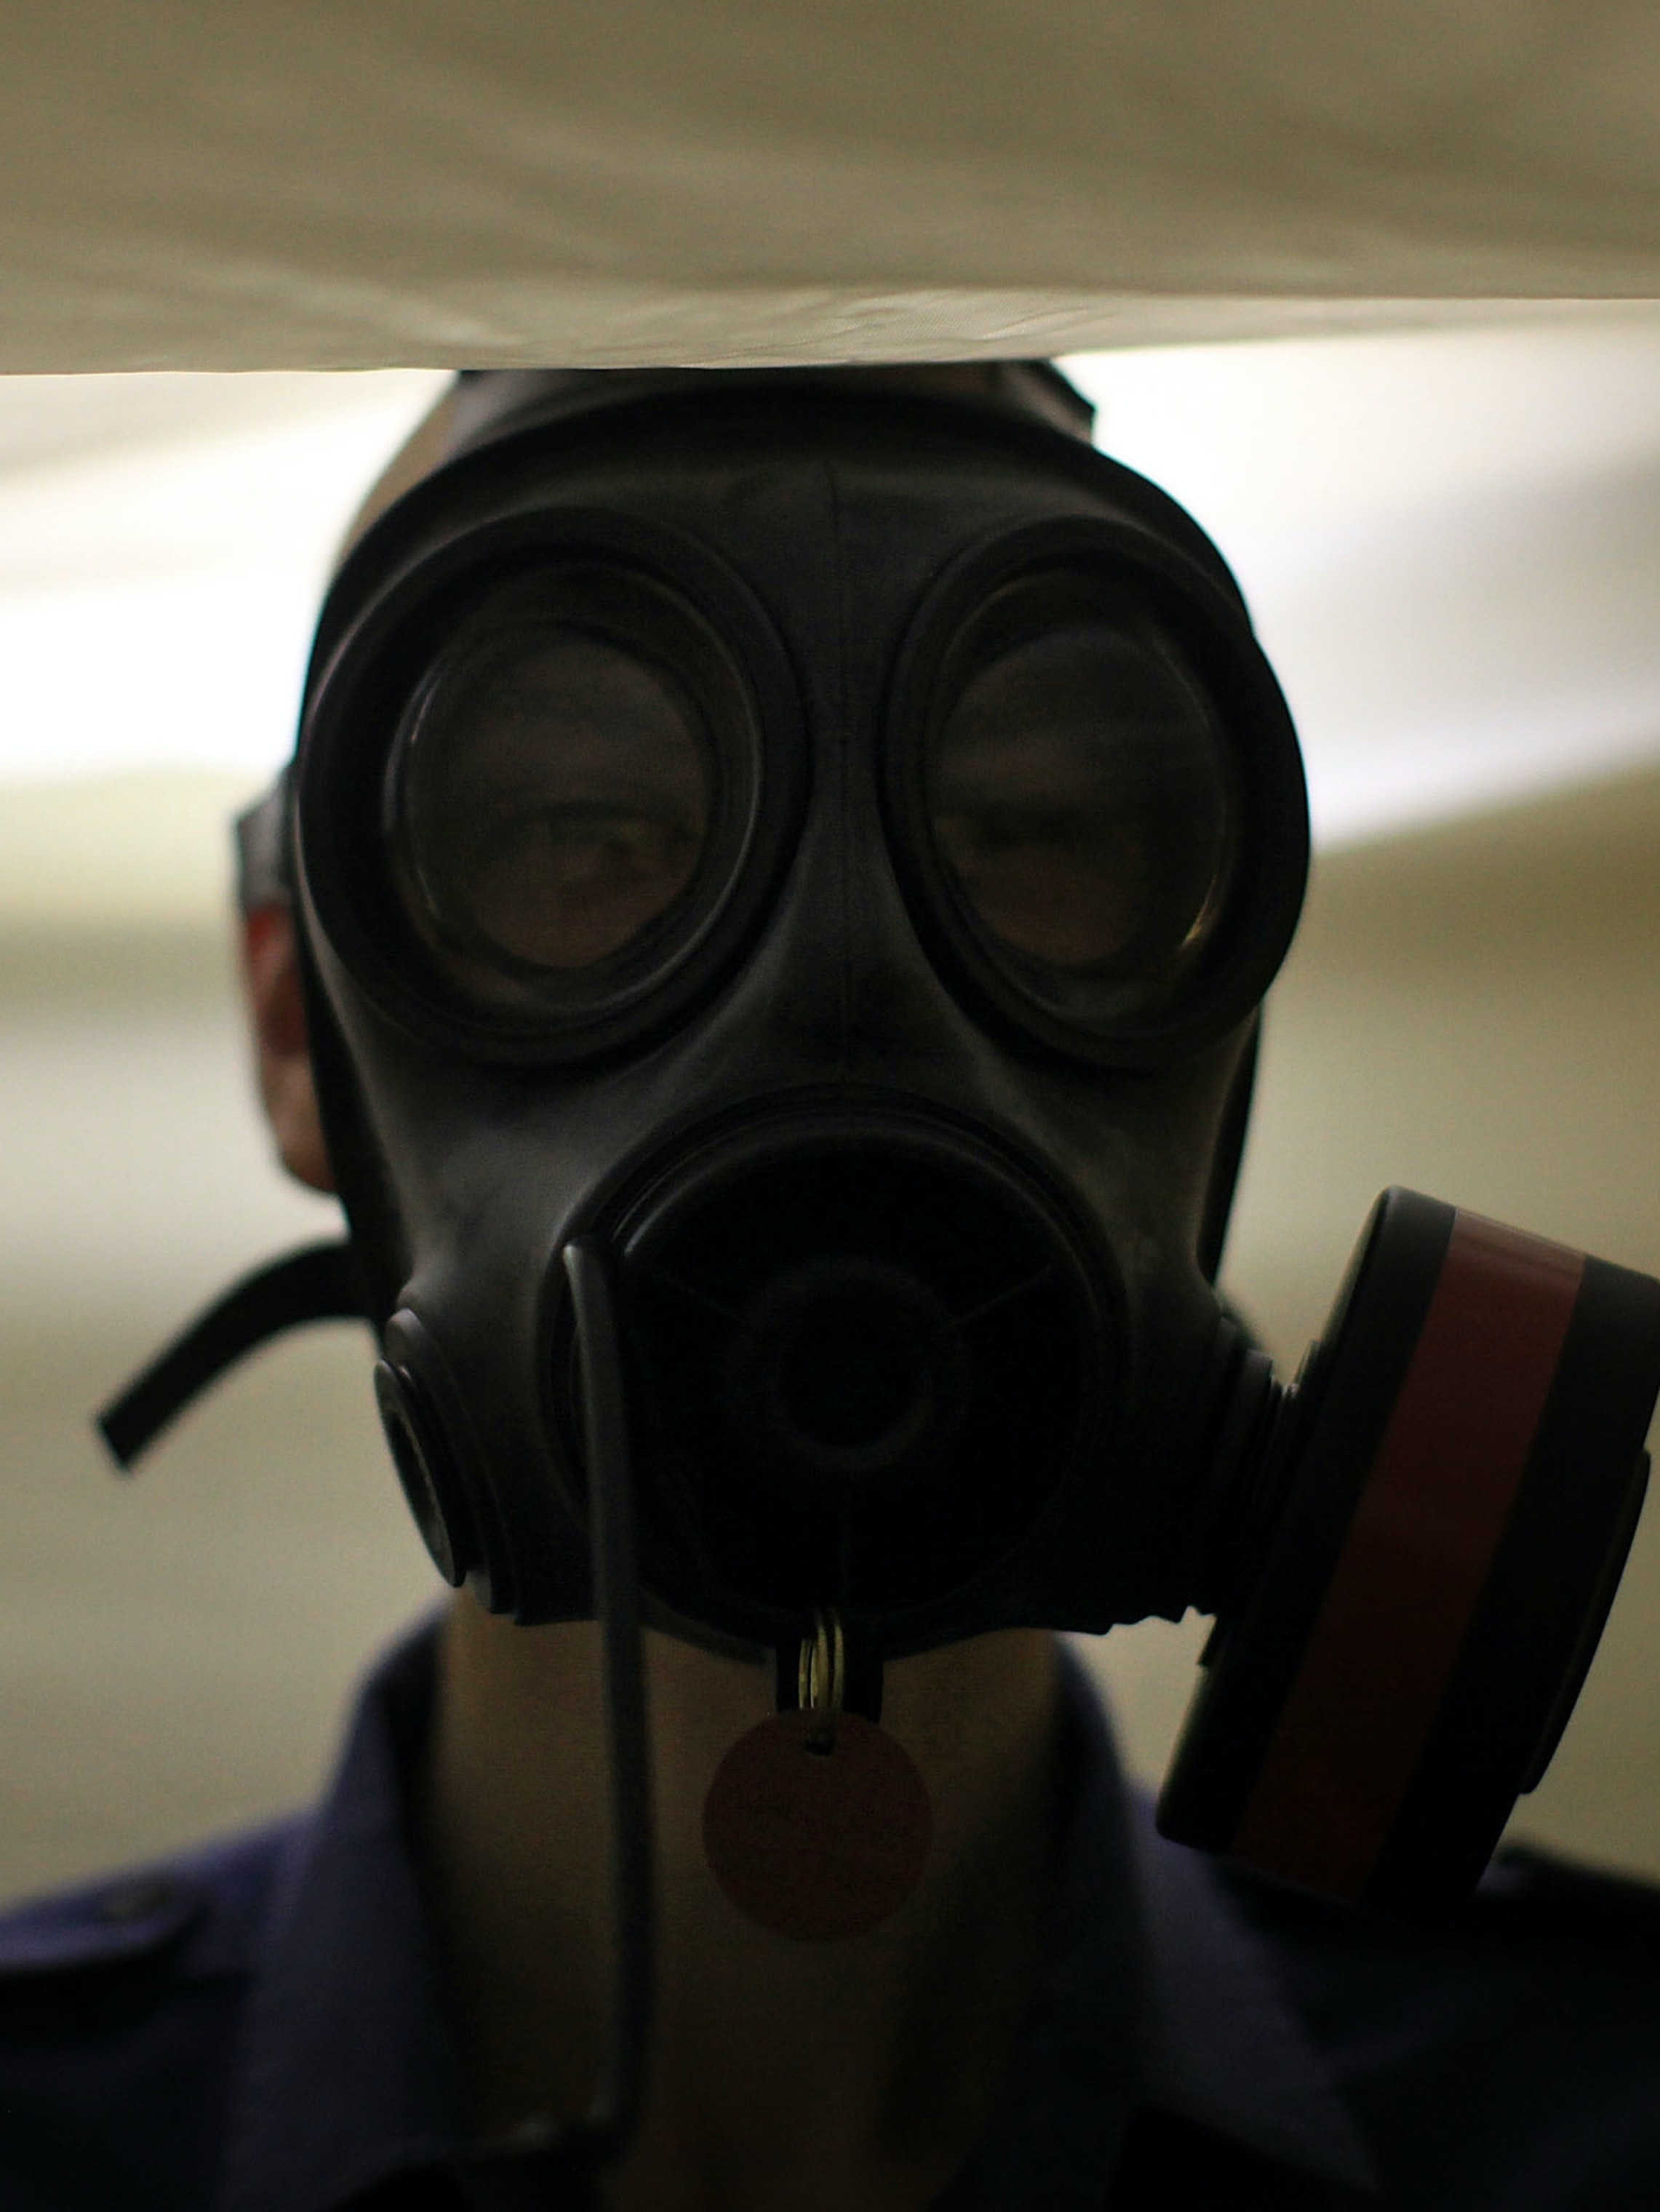 AT SEA - JULY 14:  A sailor has his gas mask tested in a sealed tent below deck on HMS Ark Royal during Exercise Auriga on July 14, 2010 at sea in Onslow Bay near North Carolina. HMS Ark Royal, the nation's strike carrier, is leading an international task group during exercise Auriga 2010 a joint US-British amphibious exercise in Onslow Bay, off the cost of North Carolina. Auriga 2010 will demonstrate the UK's ability to deploy, operate and sustain a task group out of area for a prolonged period. At full strength the Ark Royal has a full crew of 1100 to 1200. At 210 metres in length and weighing 20,000 tonnes she is the fifth vessel in the history of Britain's Royal Navy to carry the historic name of Ark Royal and is currently celebrating 25 years at sea.  (Photo by Christopher Furlong/Getty Images)